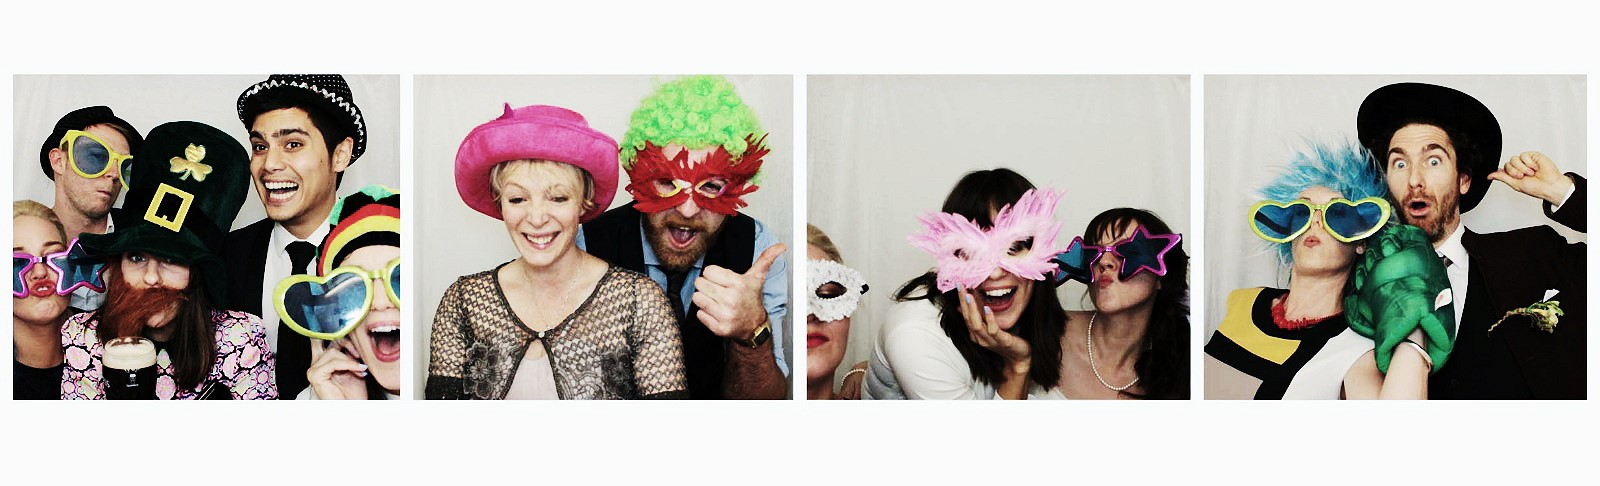 5 Reasons You Absolutely Should Have A Photo Booth At Your Wedding